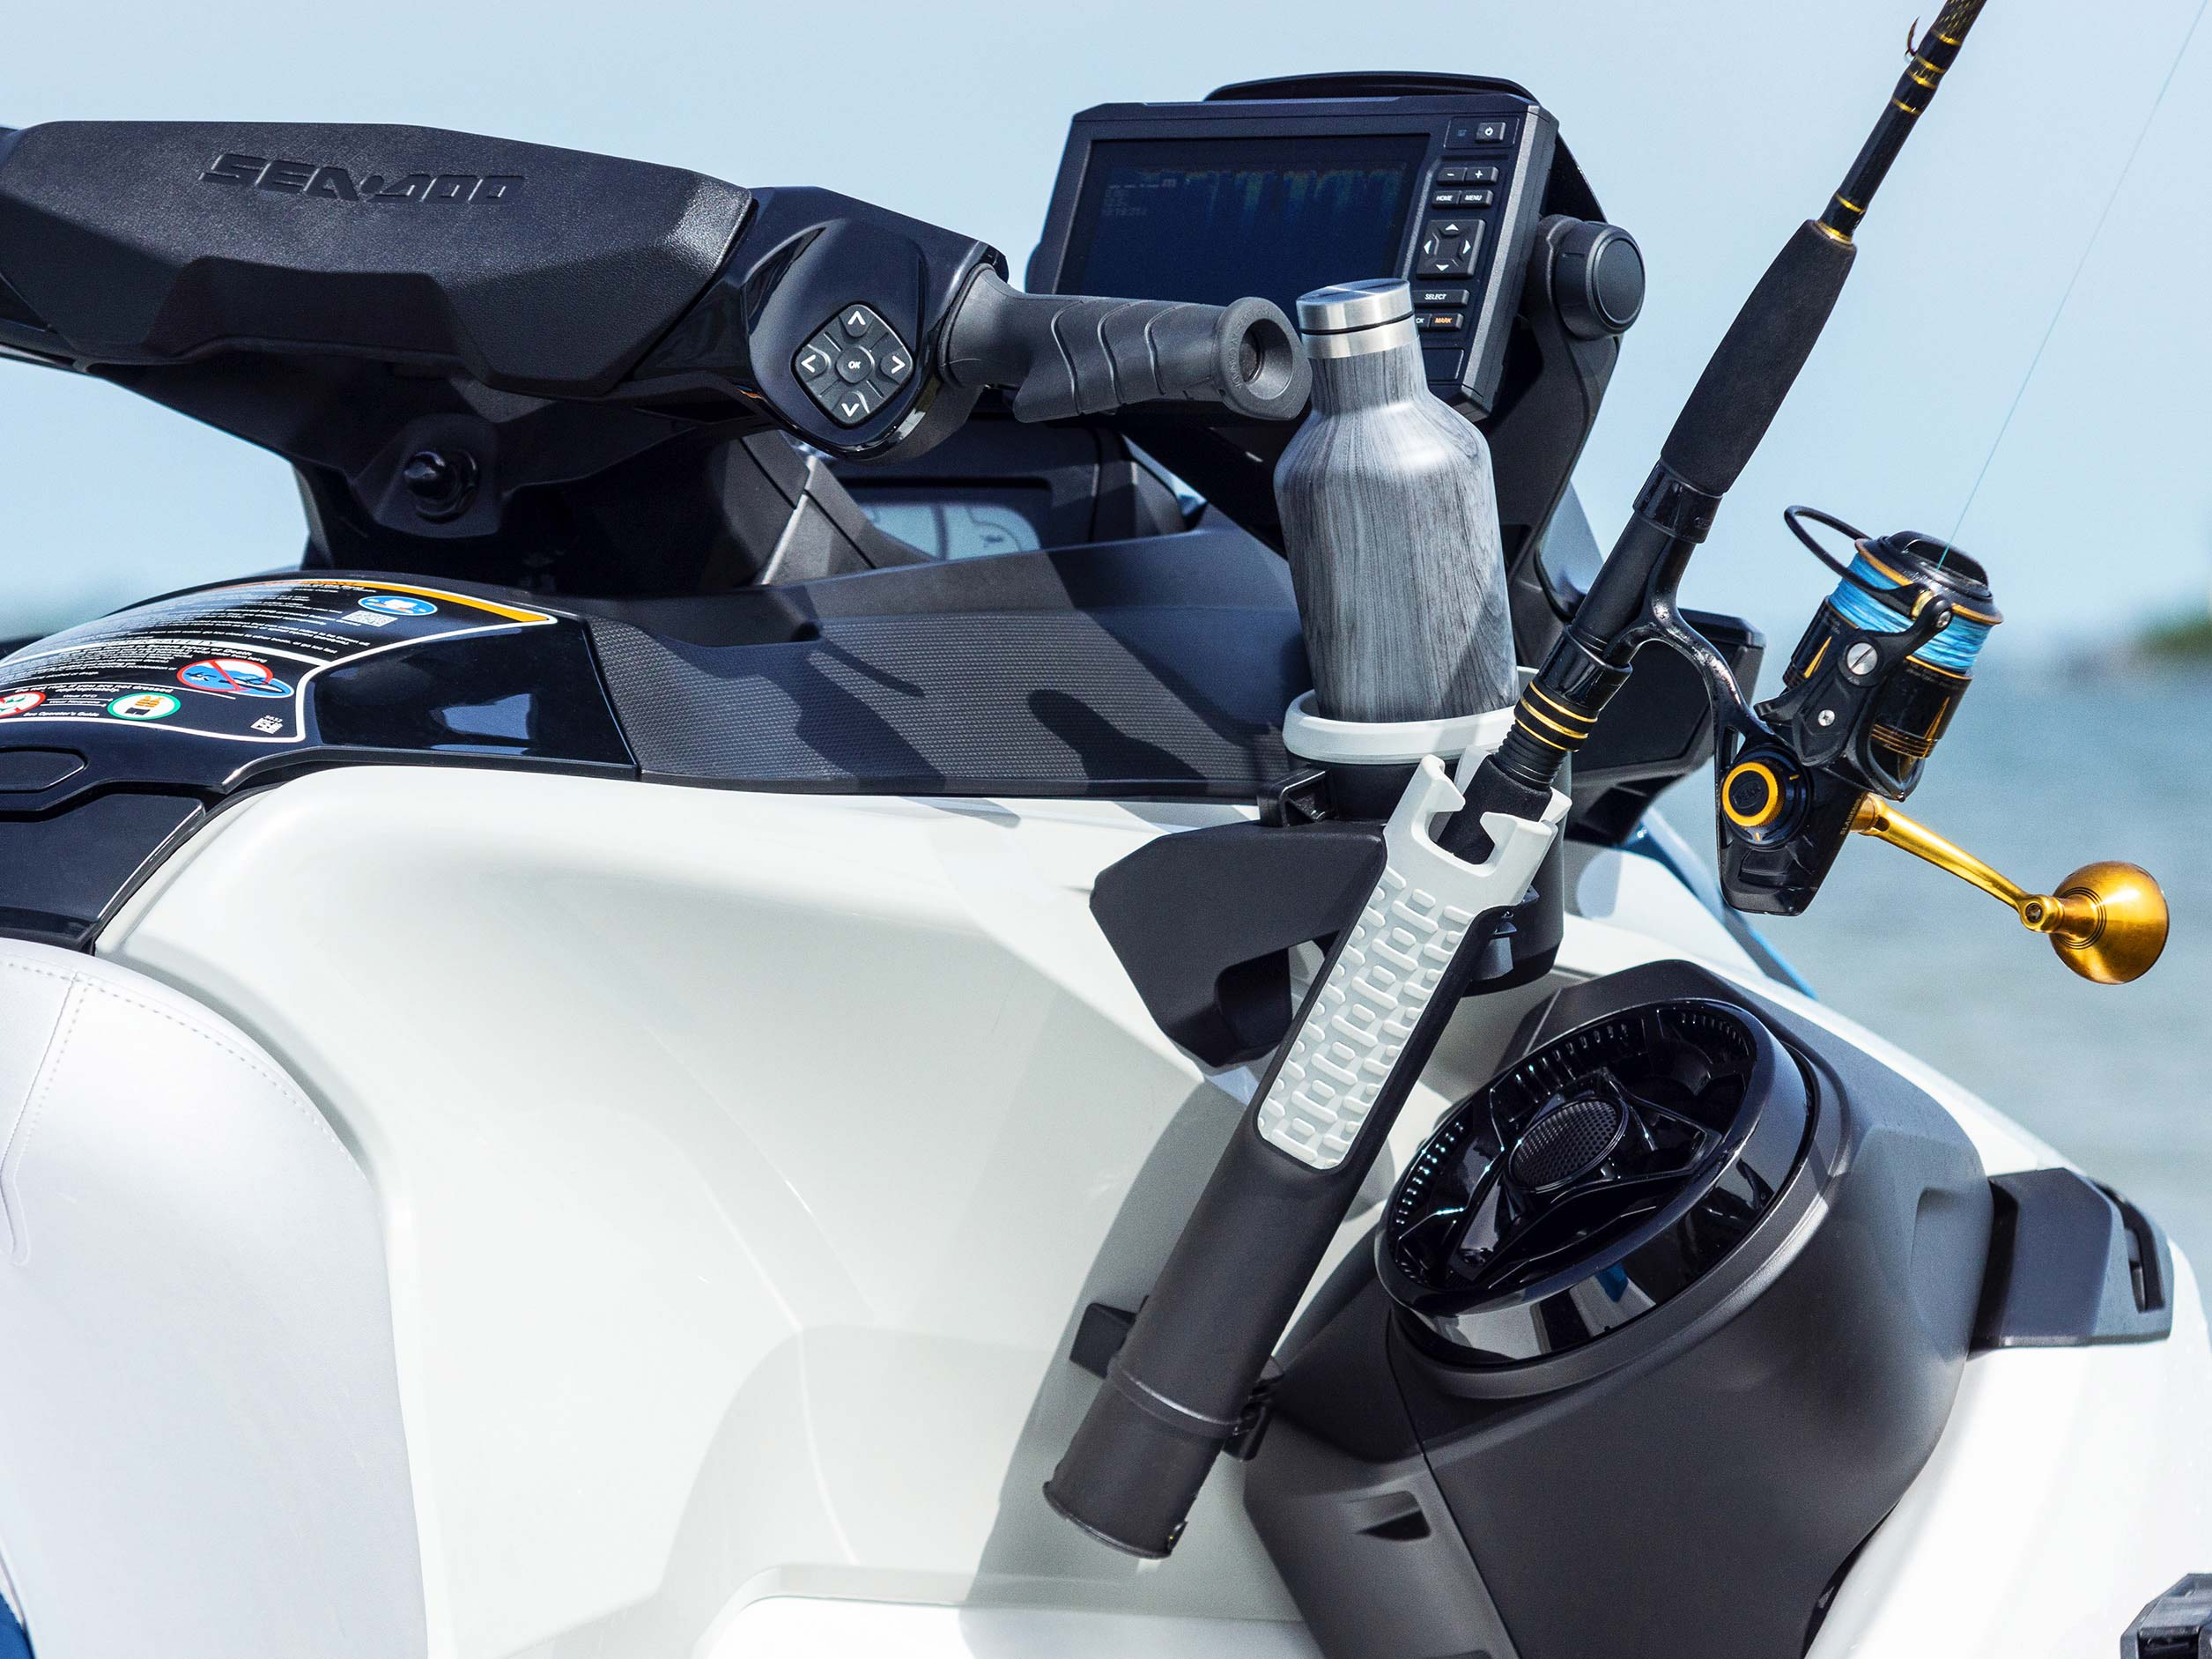 Cup and rod holder on the new Sea-Doo Fish Pro